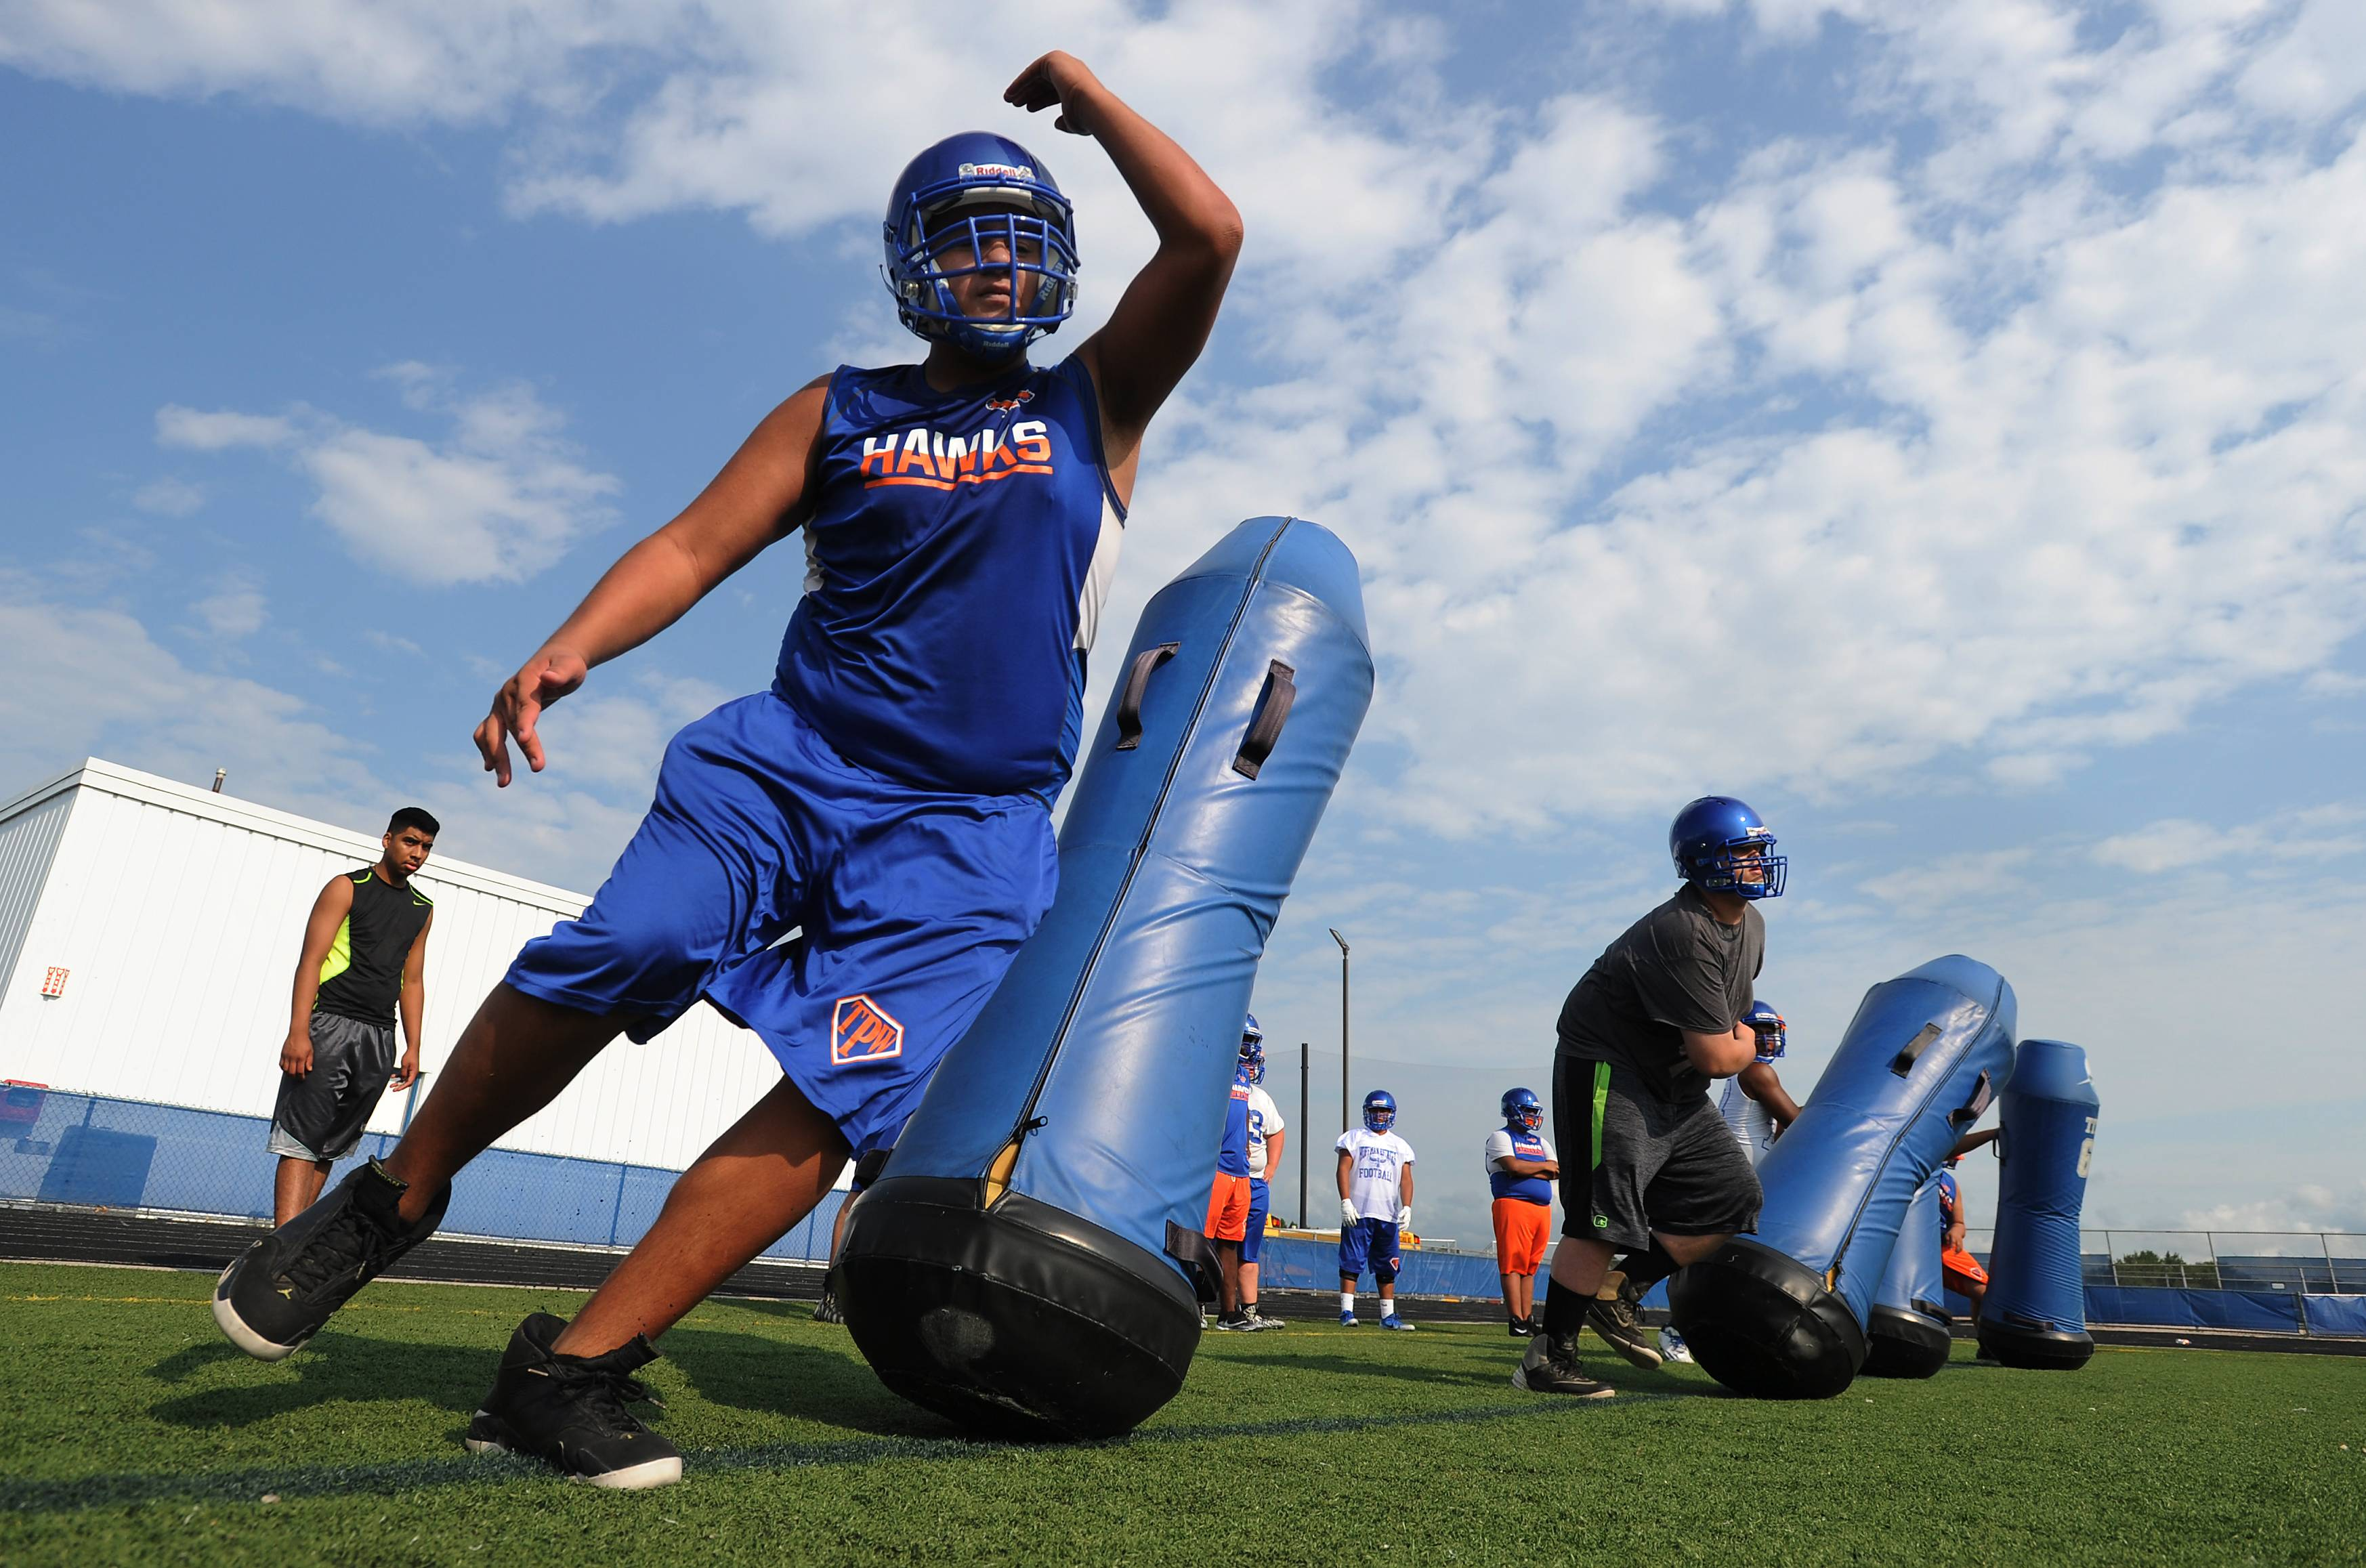 Hoffman Estates' Marco Bustos practices his defensive moves as day one of the high school football season kicks off at Hoffman Estates High School on Monday.